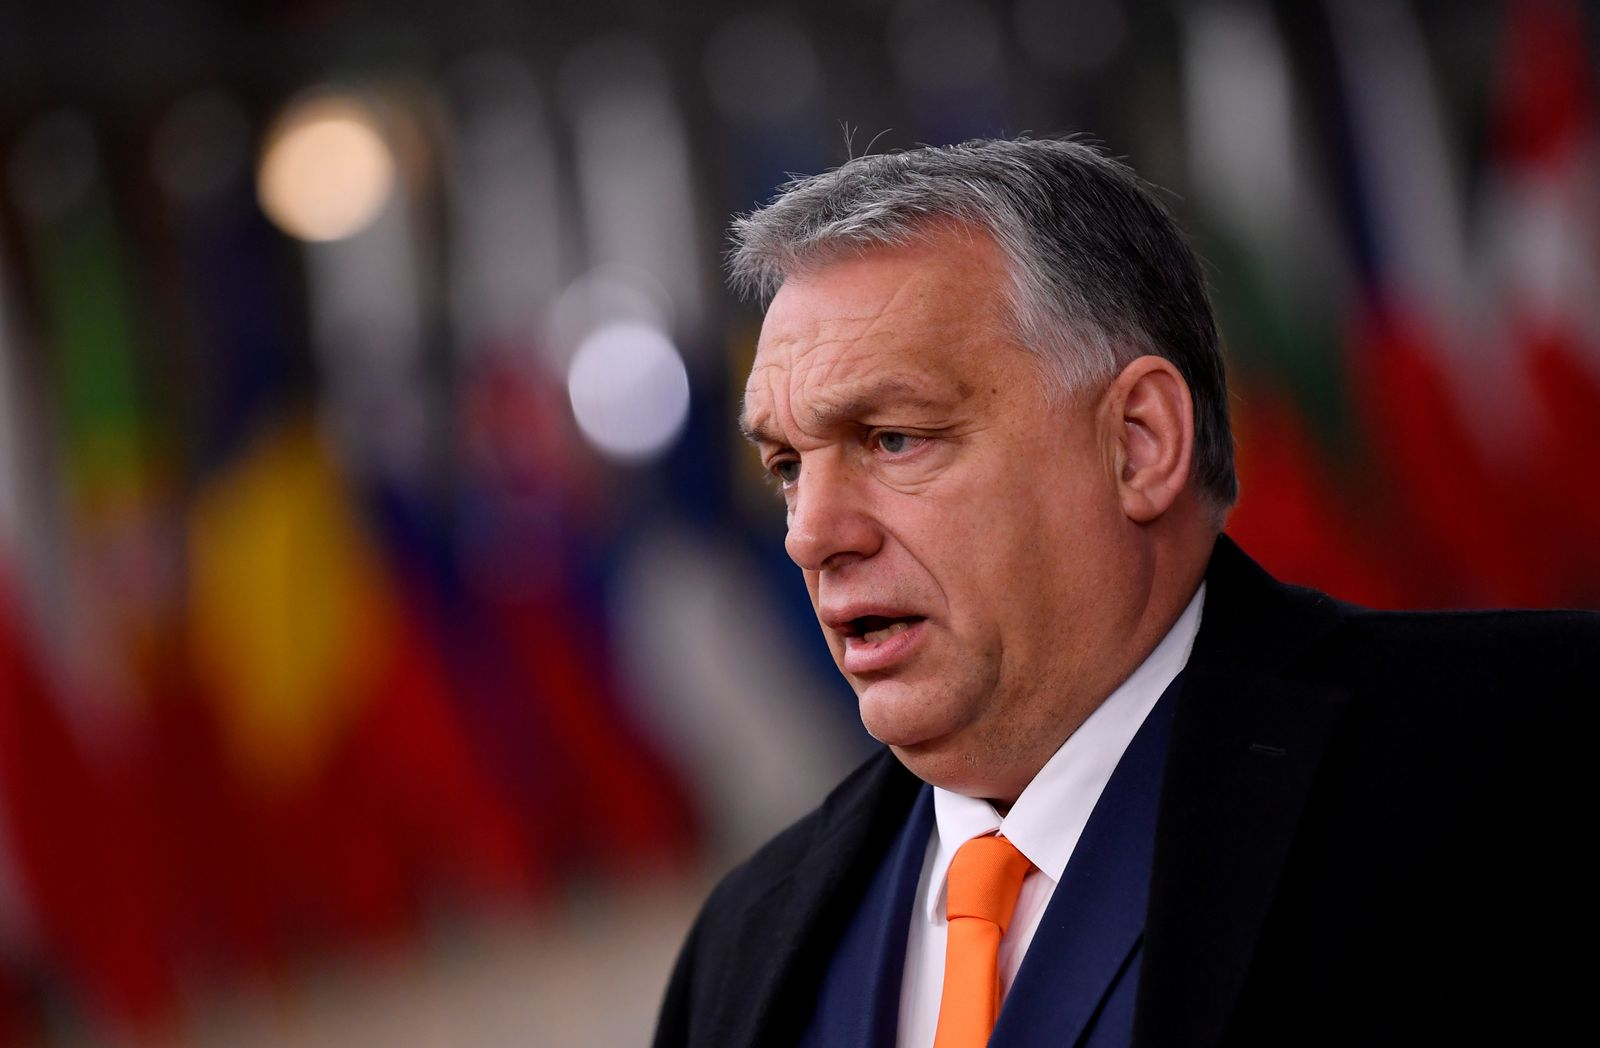 FILE PHOTO: Hungary's Prime Minister Viktor Orban speaks on arrival for an EU summit in Brussels